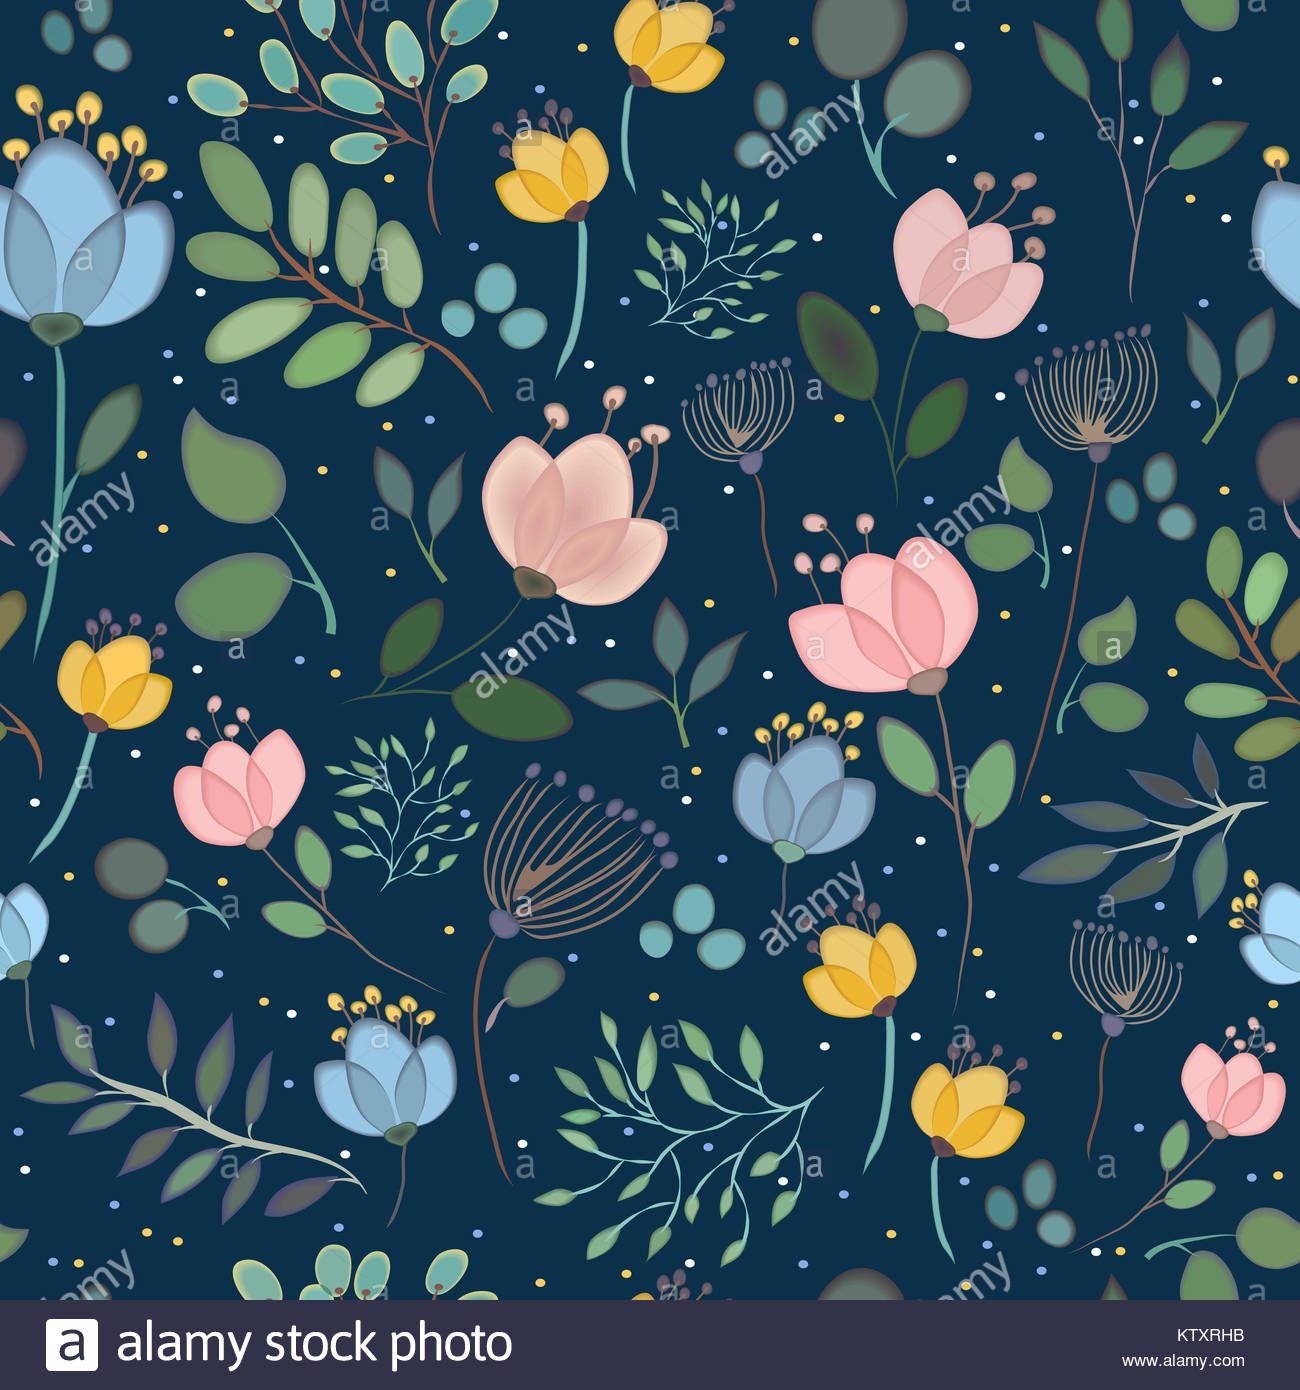 Summerly seamless pattern with watercolor flowers. Spring night. Summer night. Colorful flowers and plants with - Stock Image